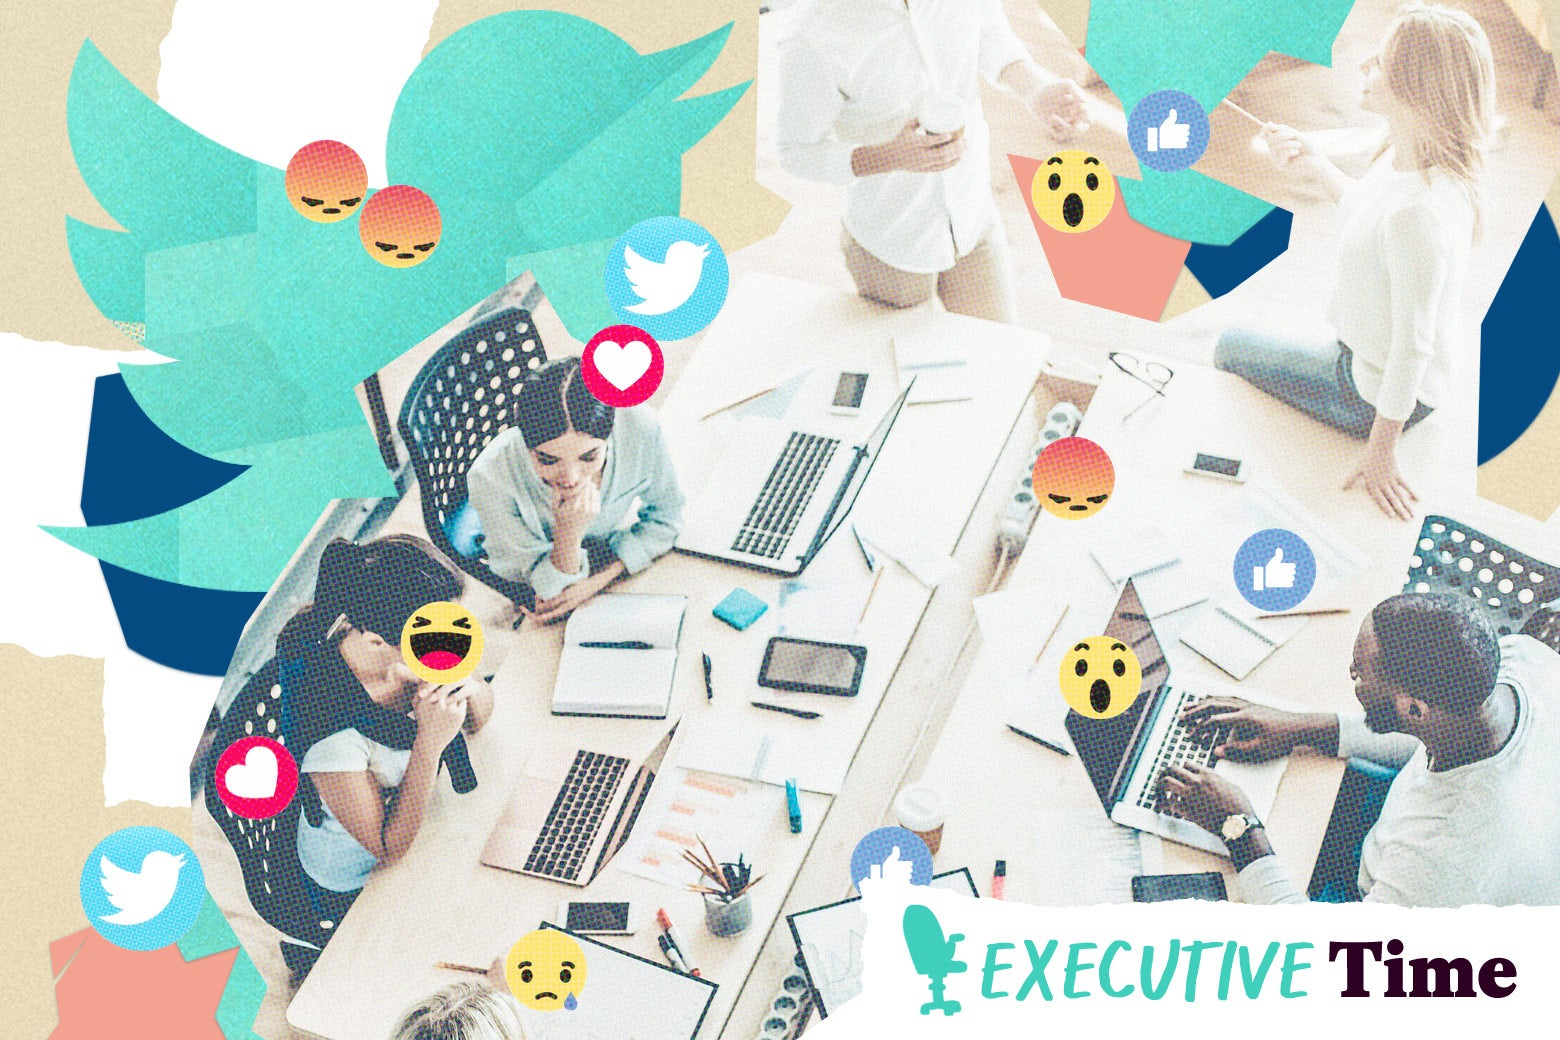 A collage of office workers surrounded by social media icons.